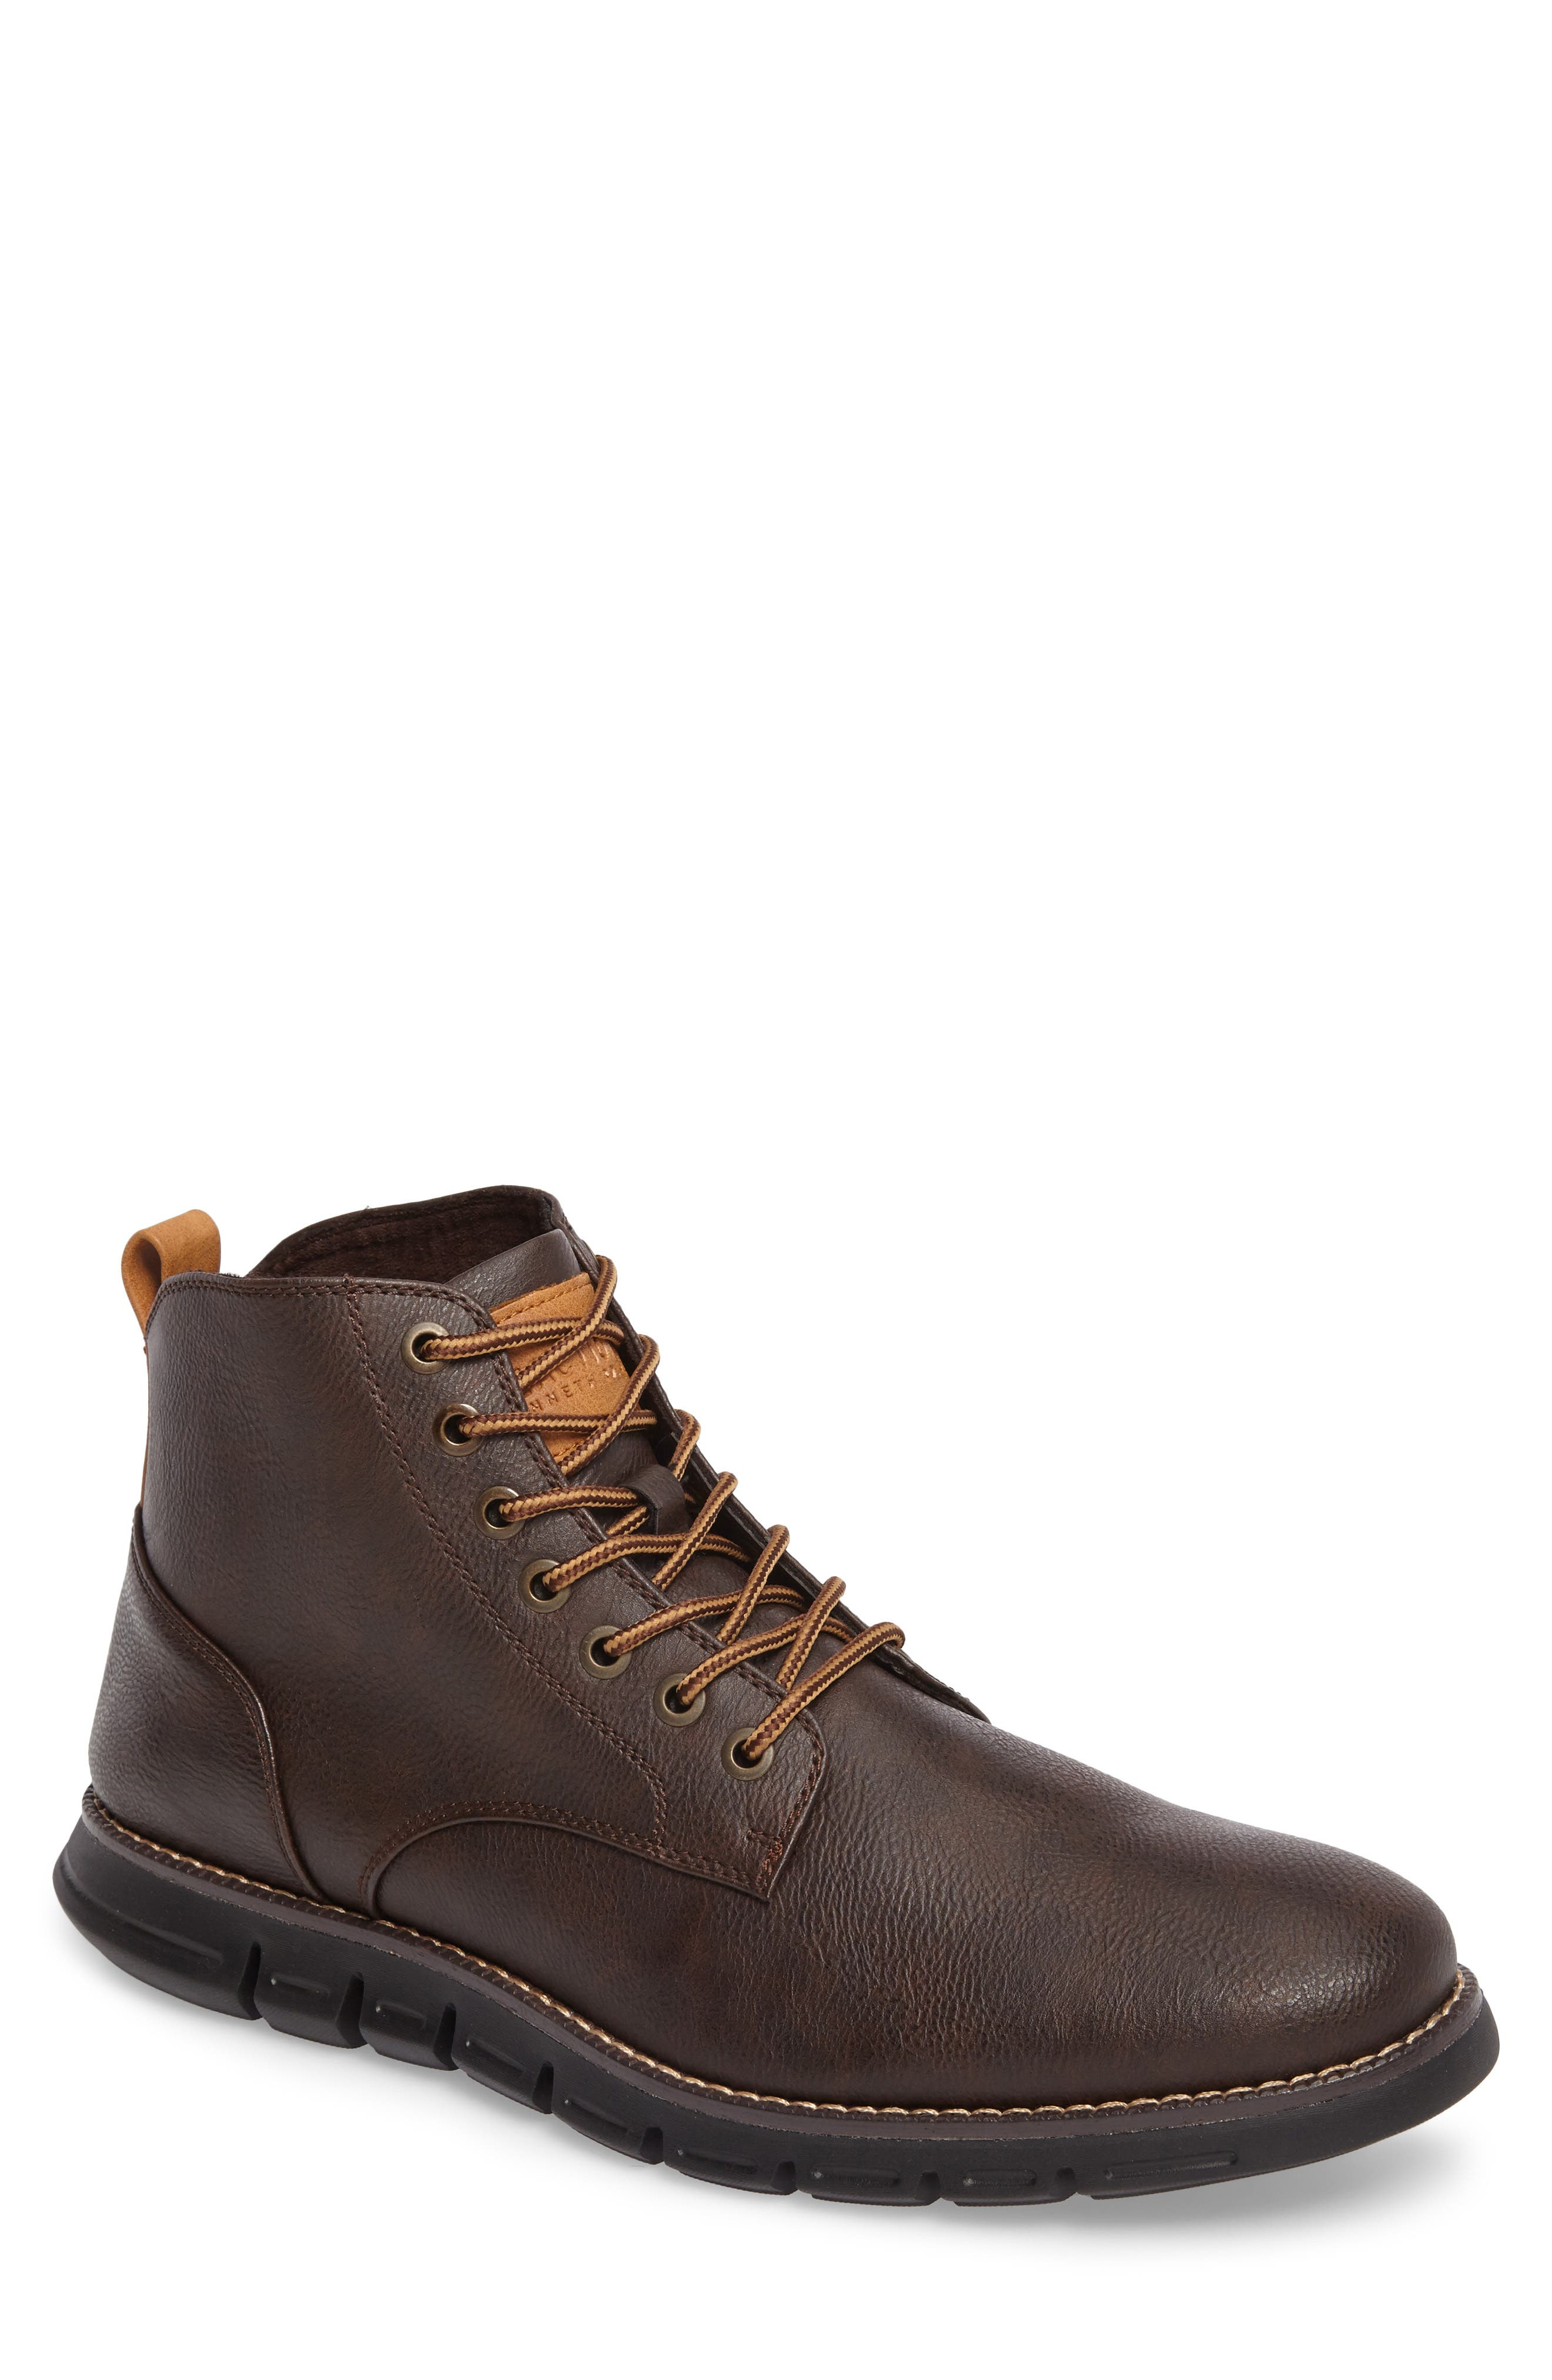 Kenneth Cole Reaction Waterproof Plain Toe Boot, Main, color, 200